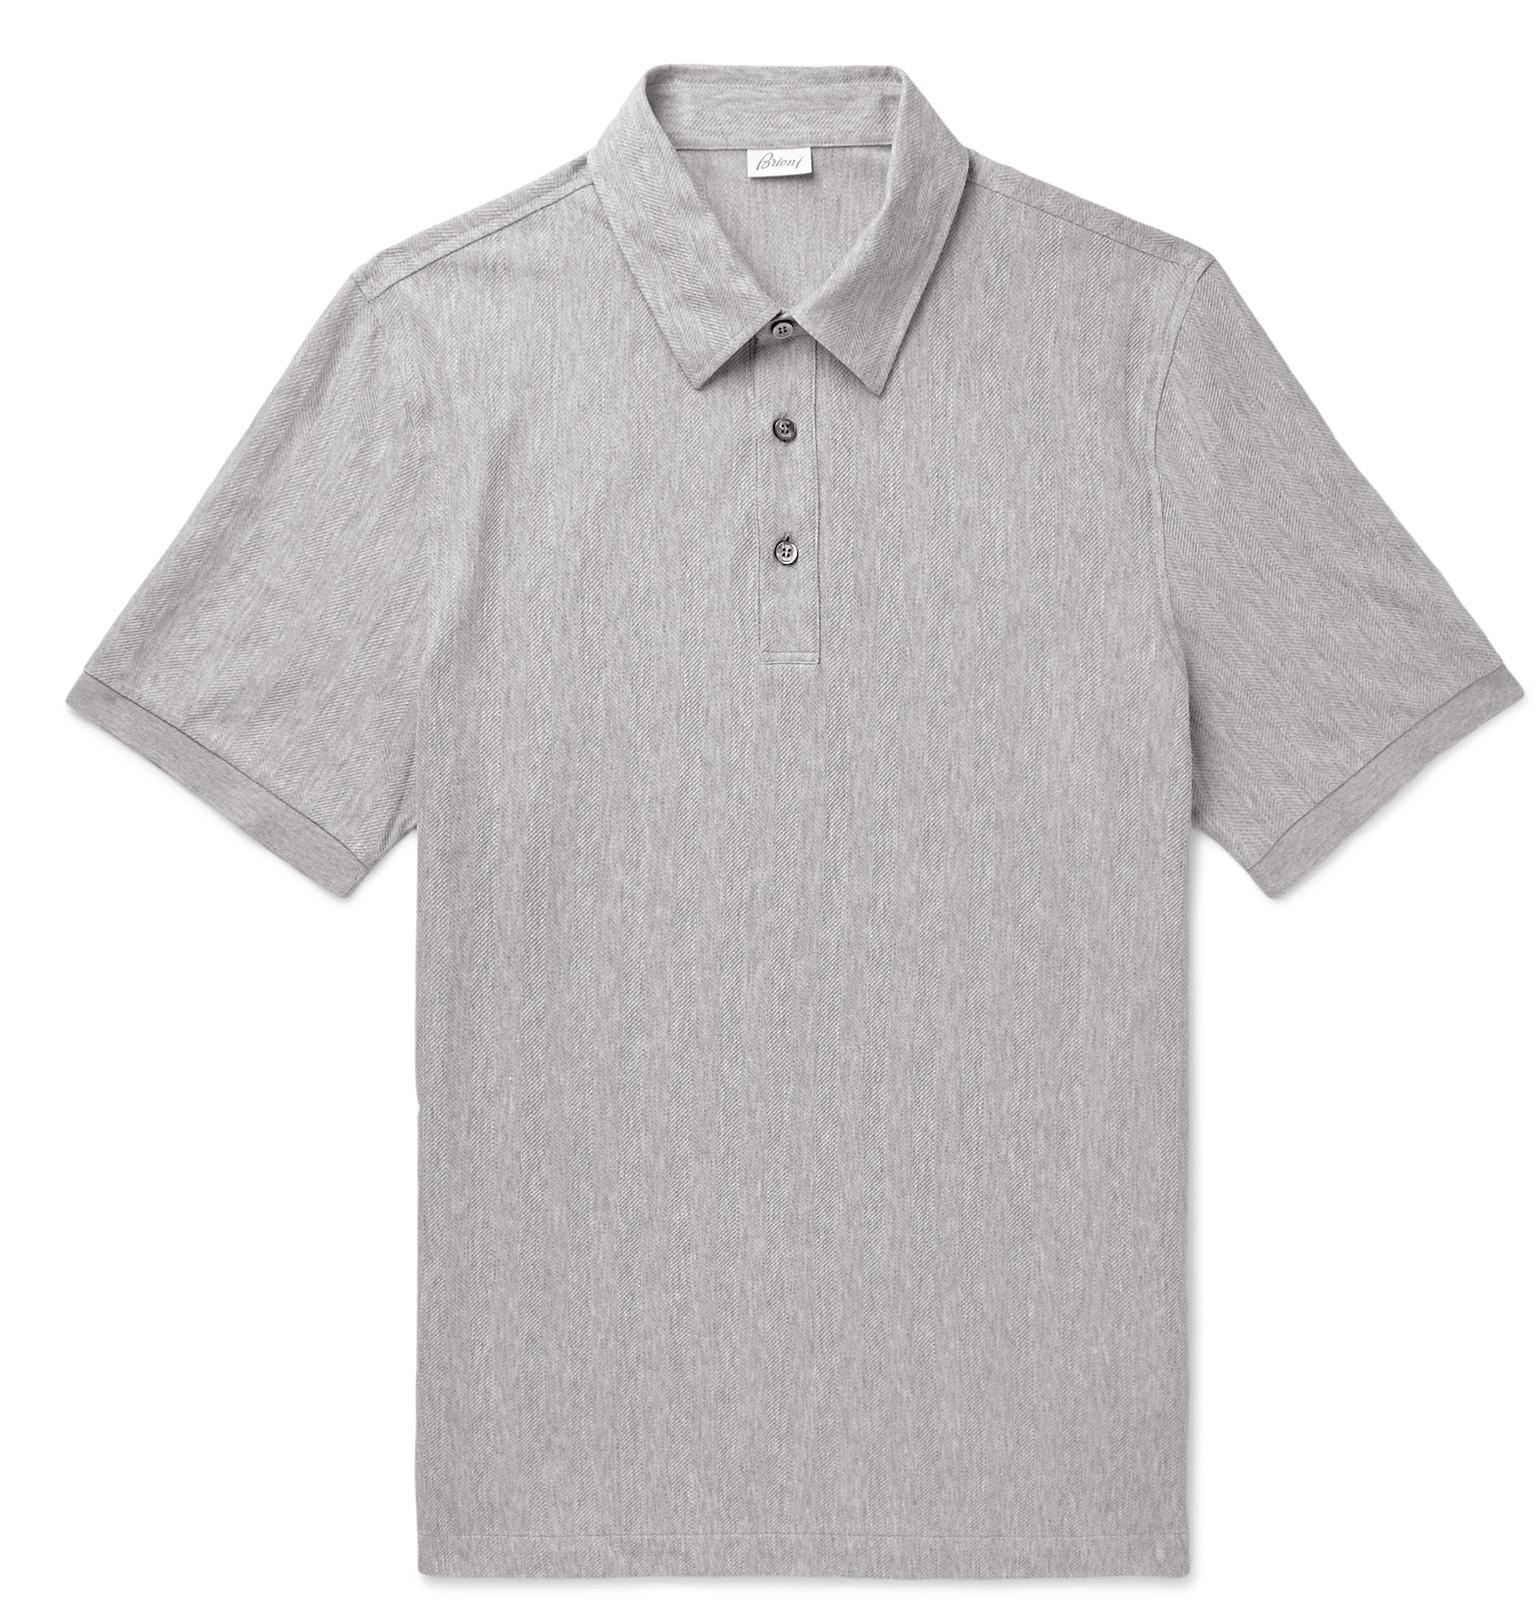 d80743de83 brioni-gray-Herringbone-Cotton-jersey-Polo-Shirt.jpeg